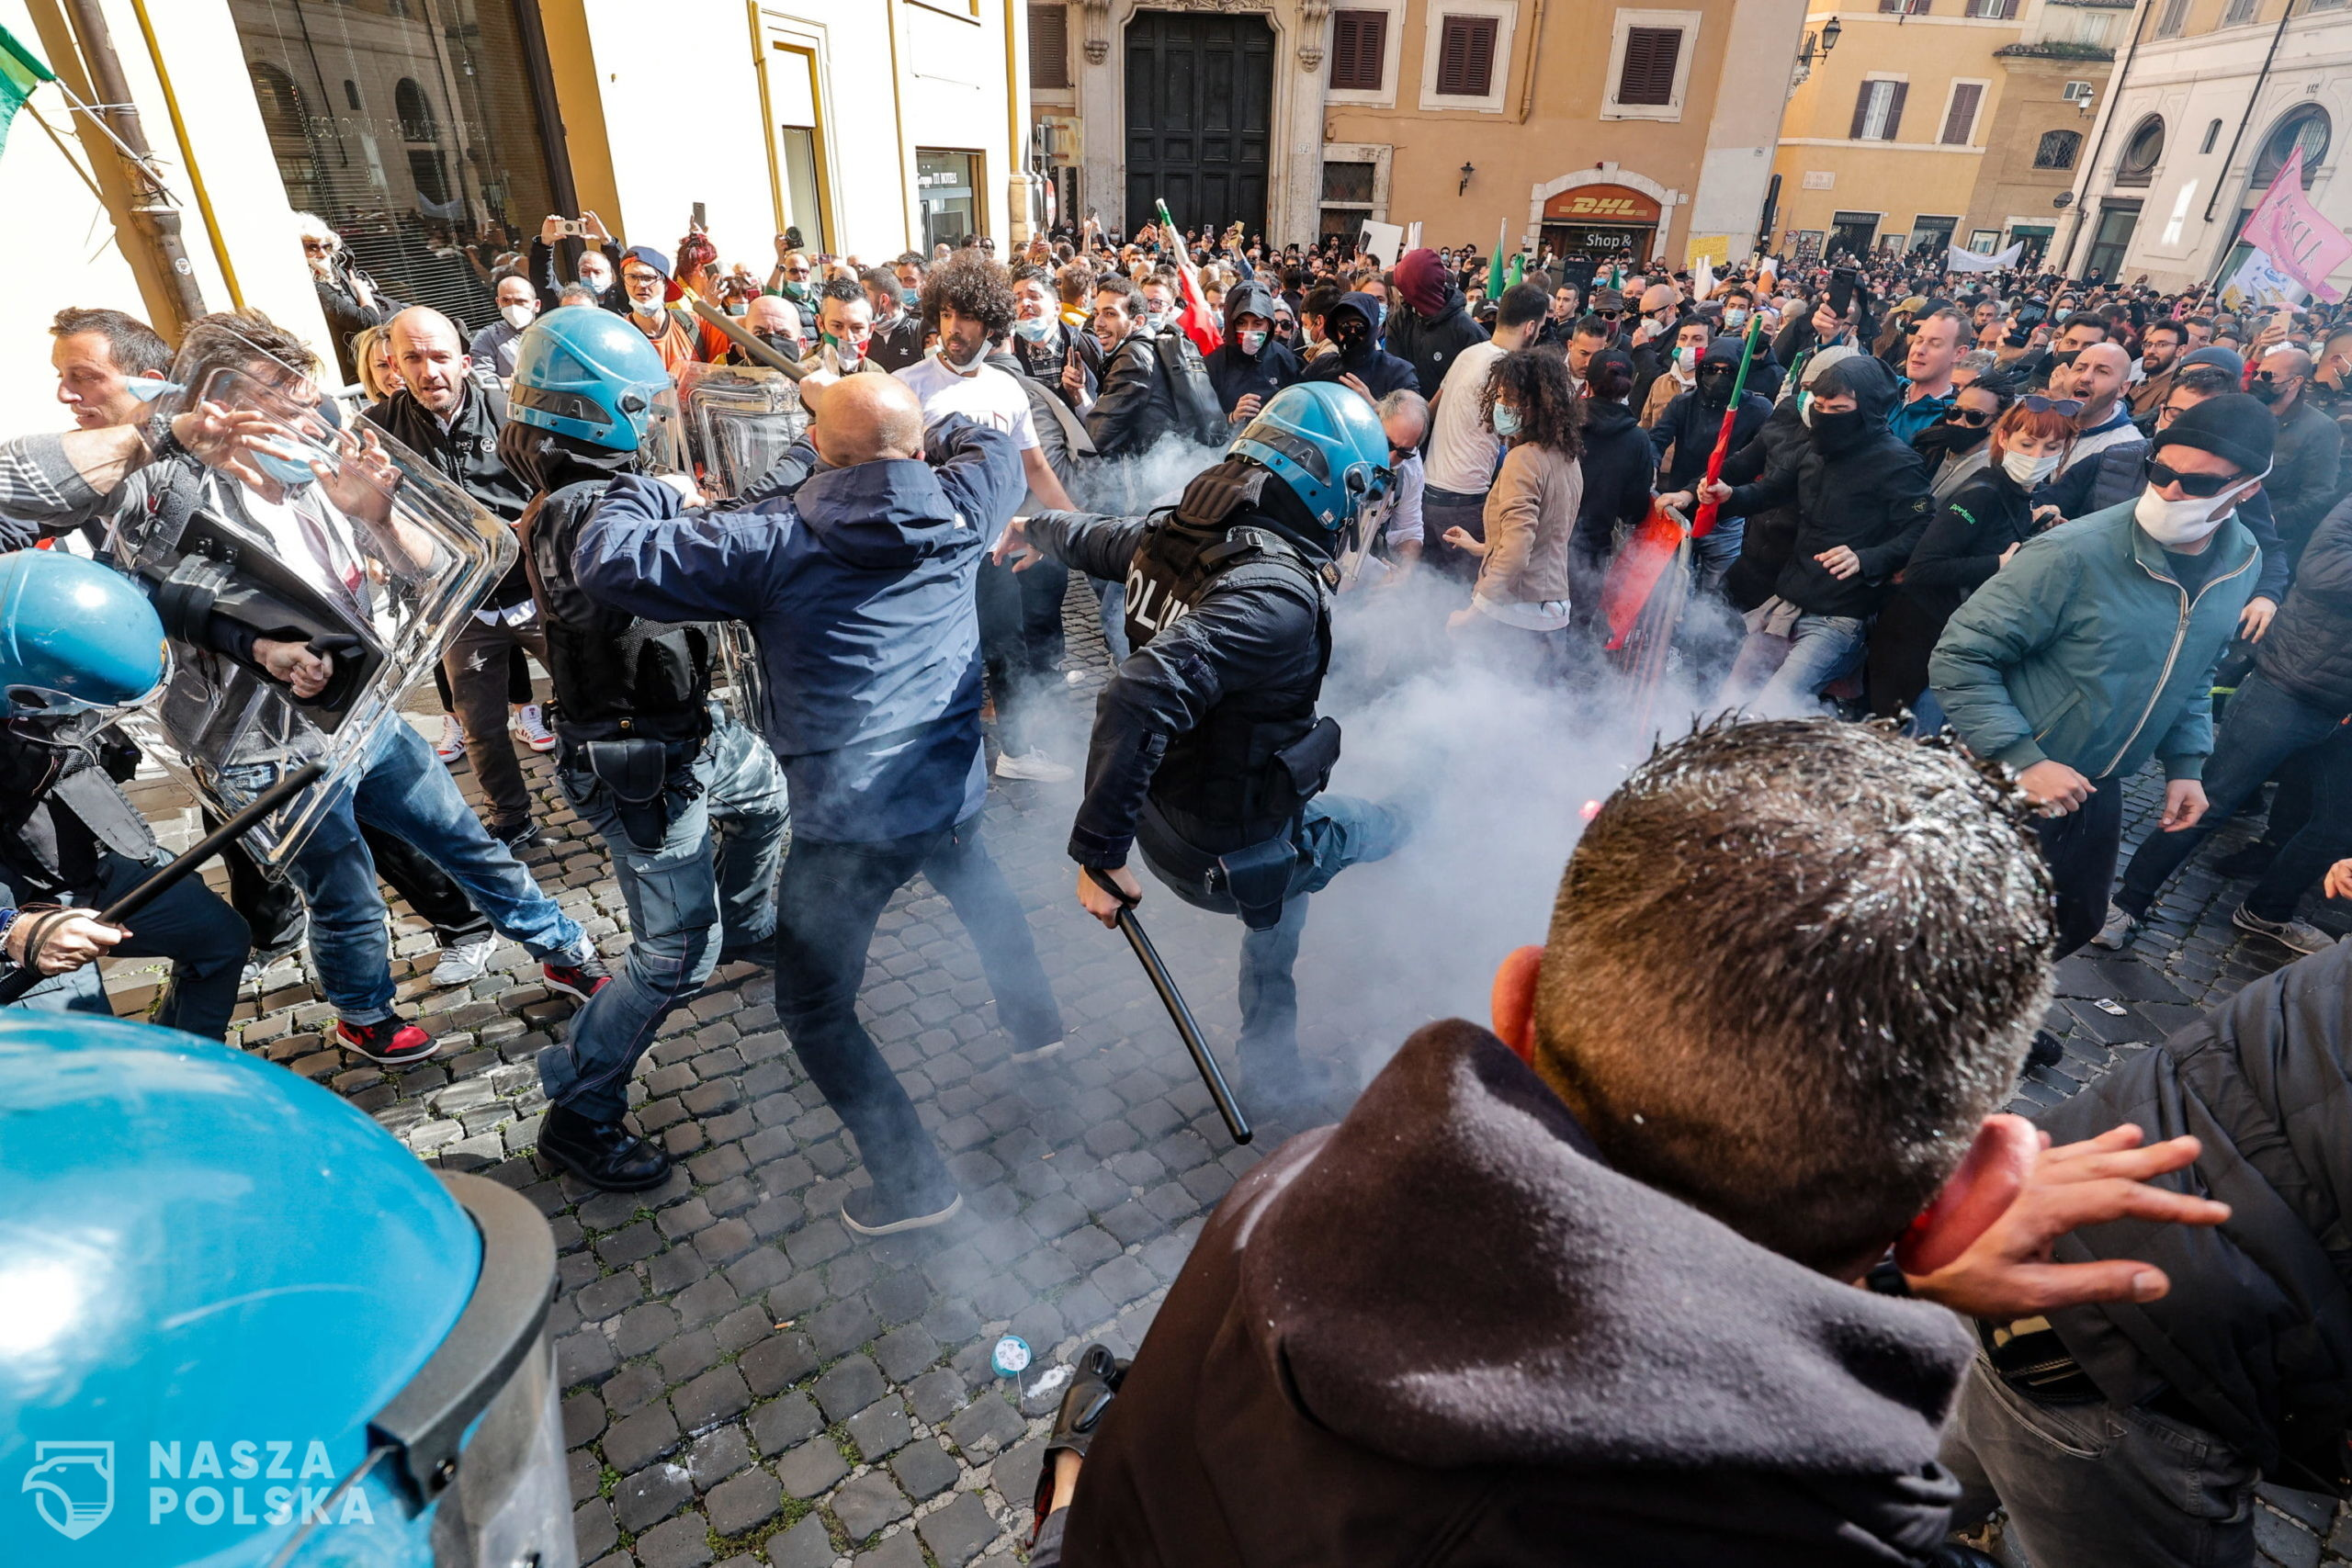 epa09118673 Traders, shopkeepers and restaurateurs clash with police during a protest next to the Chamber of Deputies in Piazza Montecitorio, Rome, Italy, 06 April 2021. The protesters, many with lowered masks, demand the reopening of their shops and restaurants amid the third COVID-19 pandemic lockdown measures.  EPA/GIUSEPPE LAMI  Dostawca: PAP/EPA.